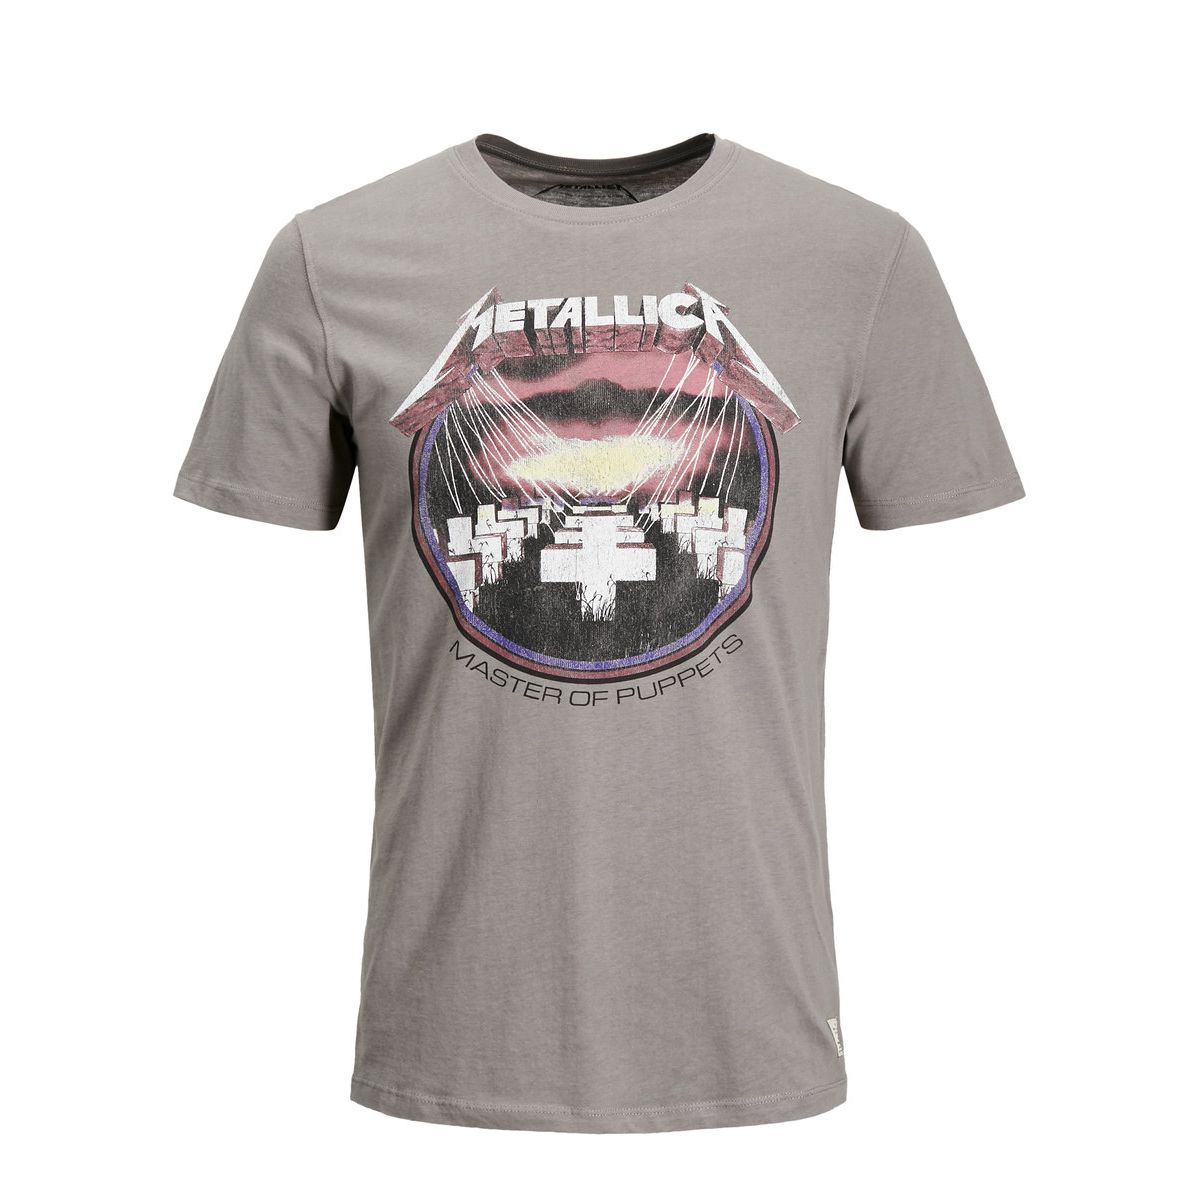 Jack & Jones Band- T-Shirt